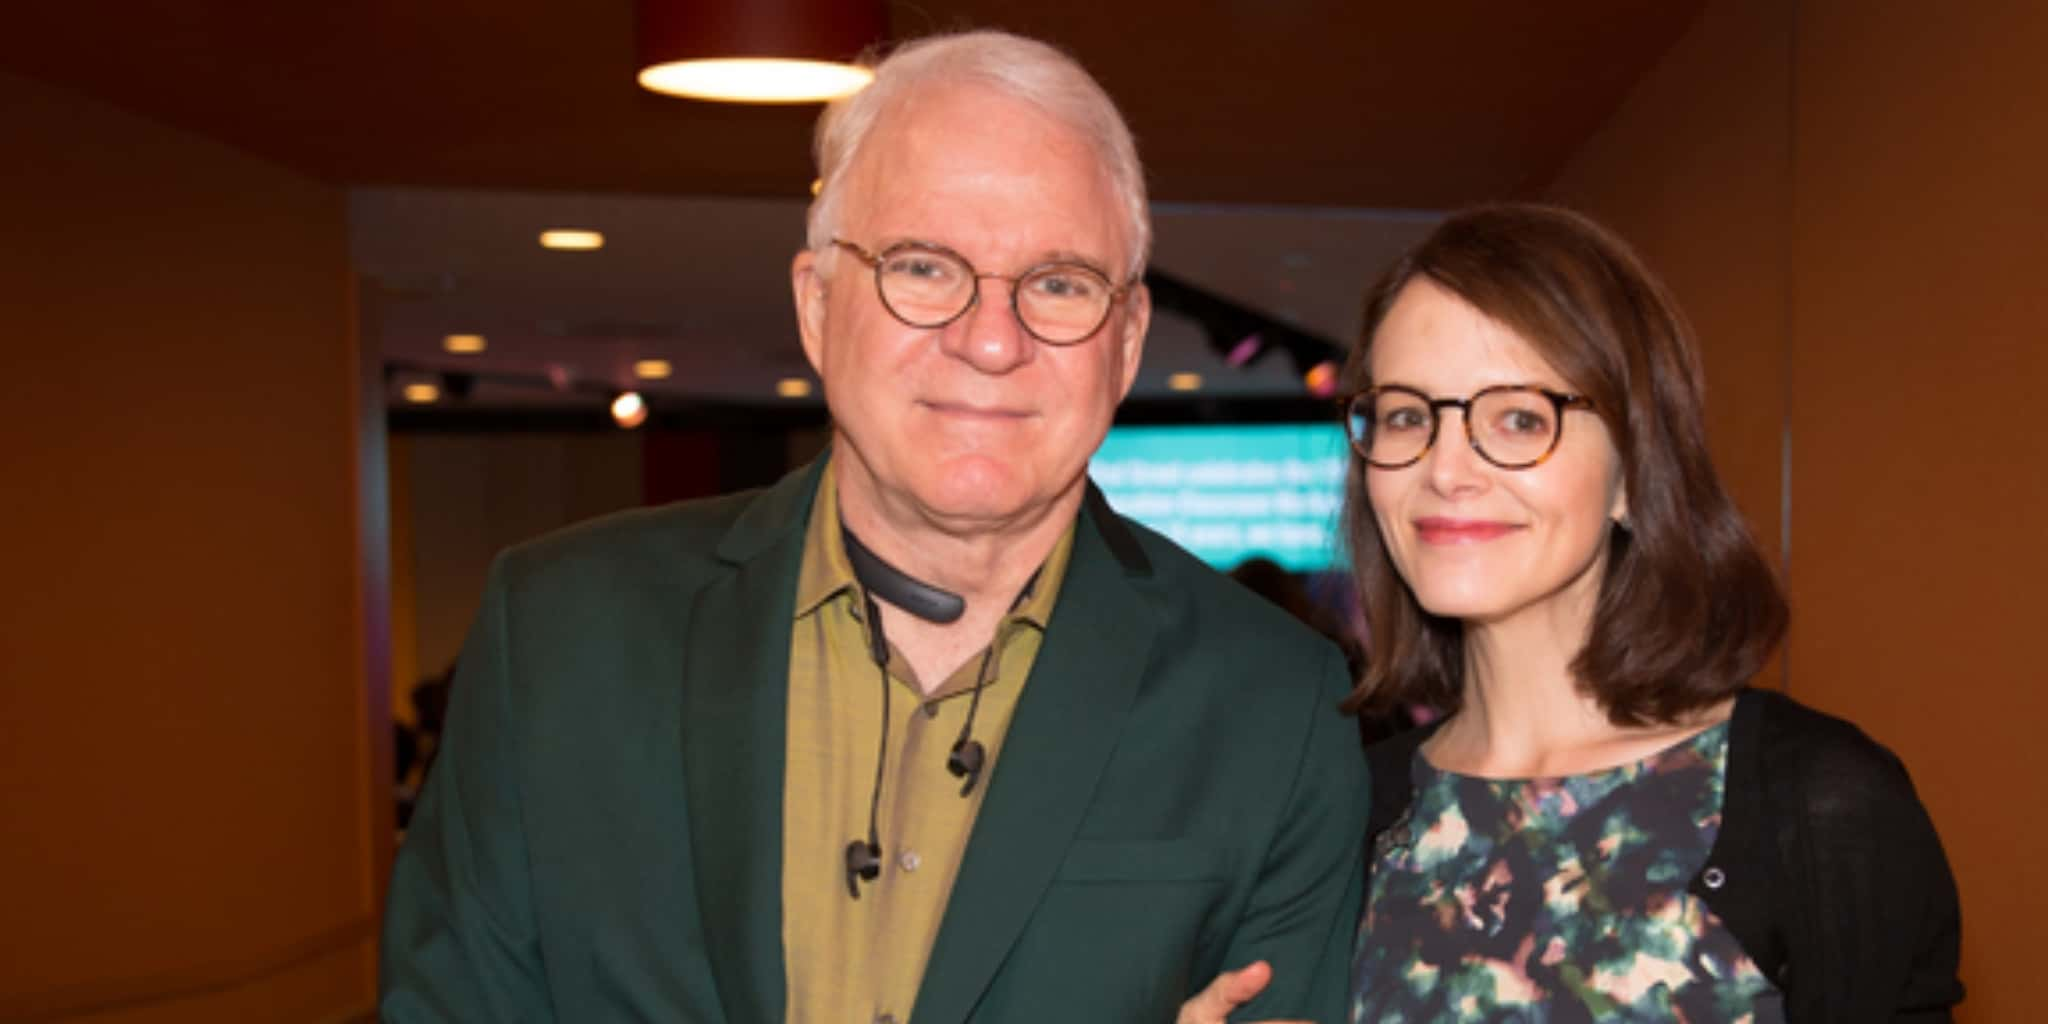 Anne Stringfield biography, age, all you need to know about Steve Martin's younger wife